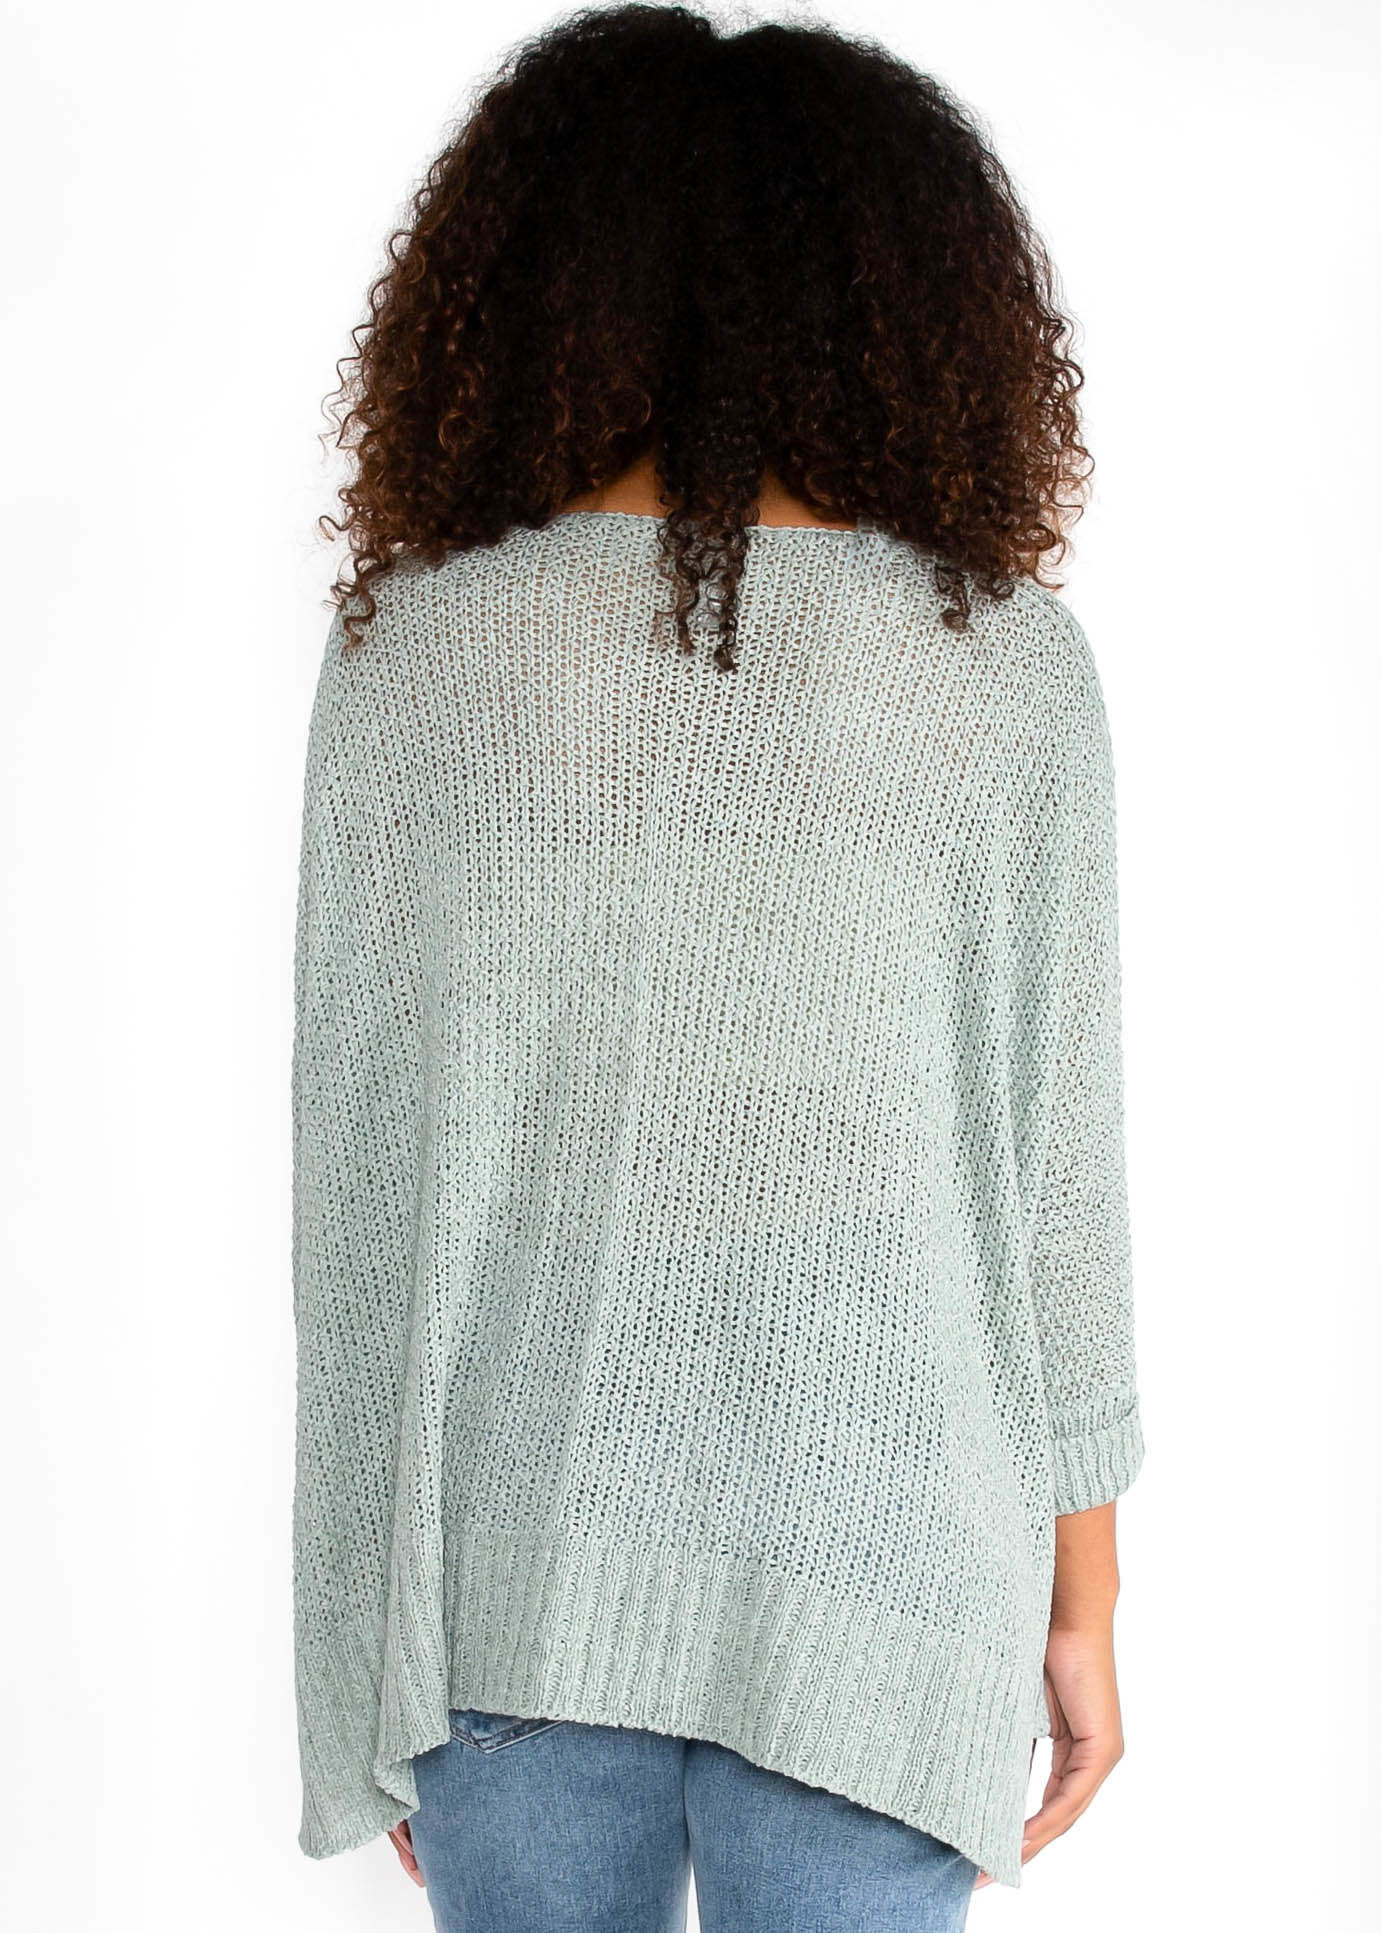 FOR THE RECORD OVERSIZED SWEATER